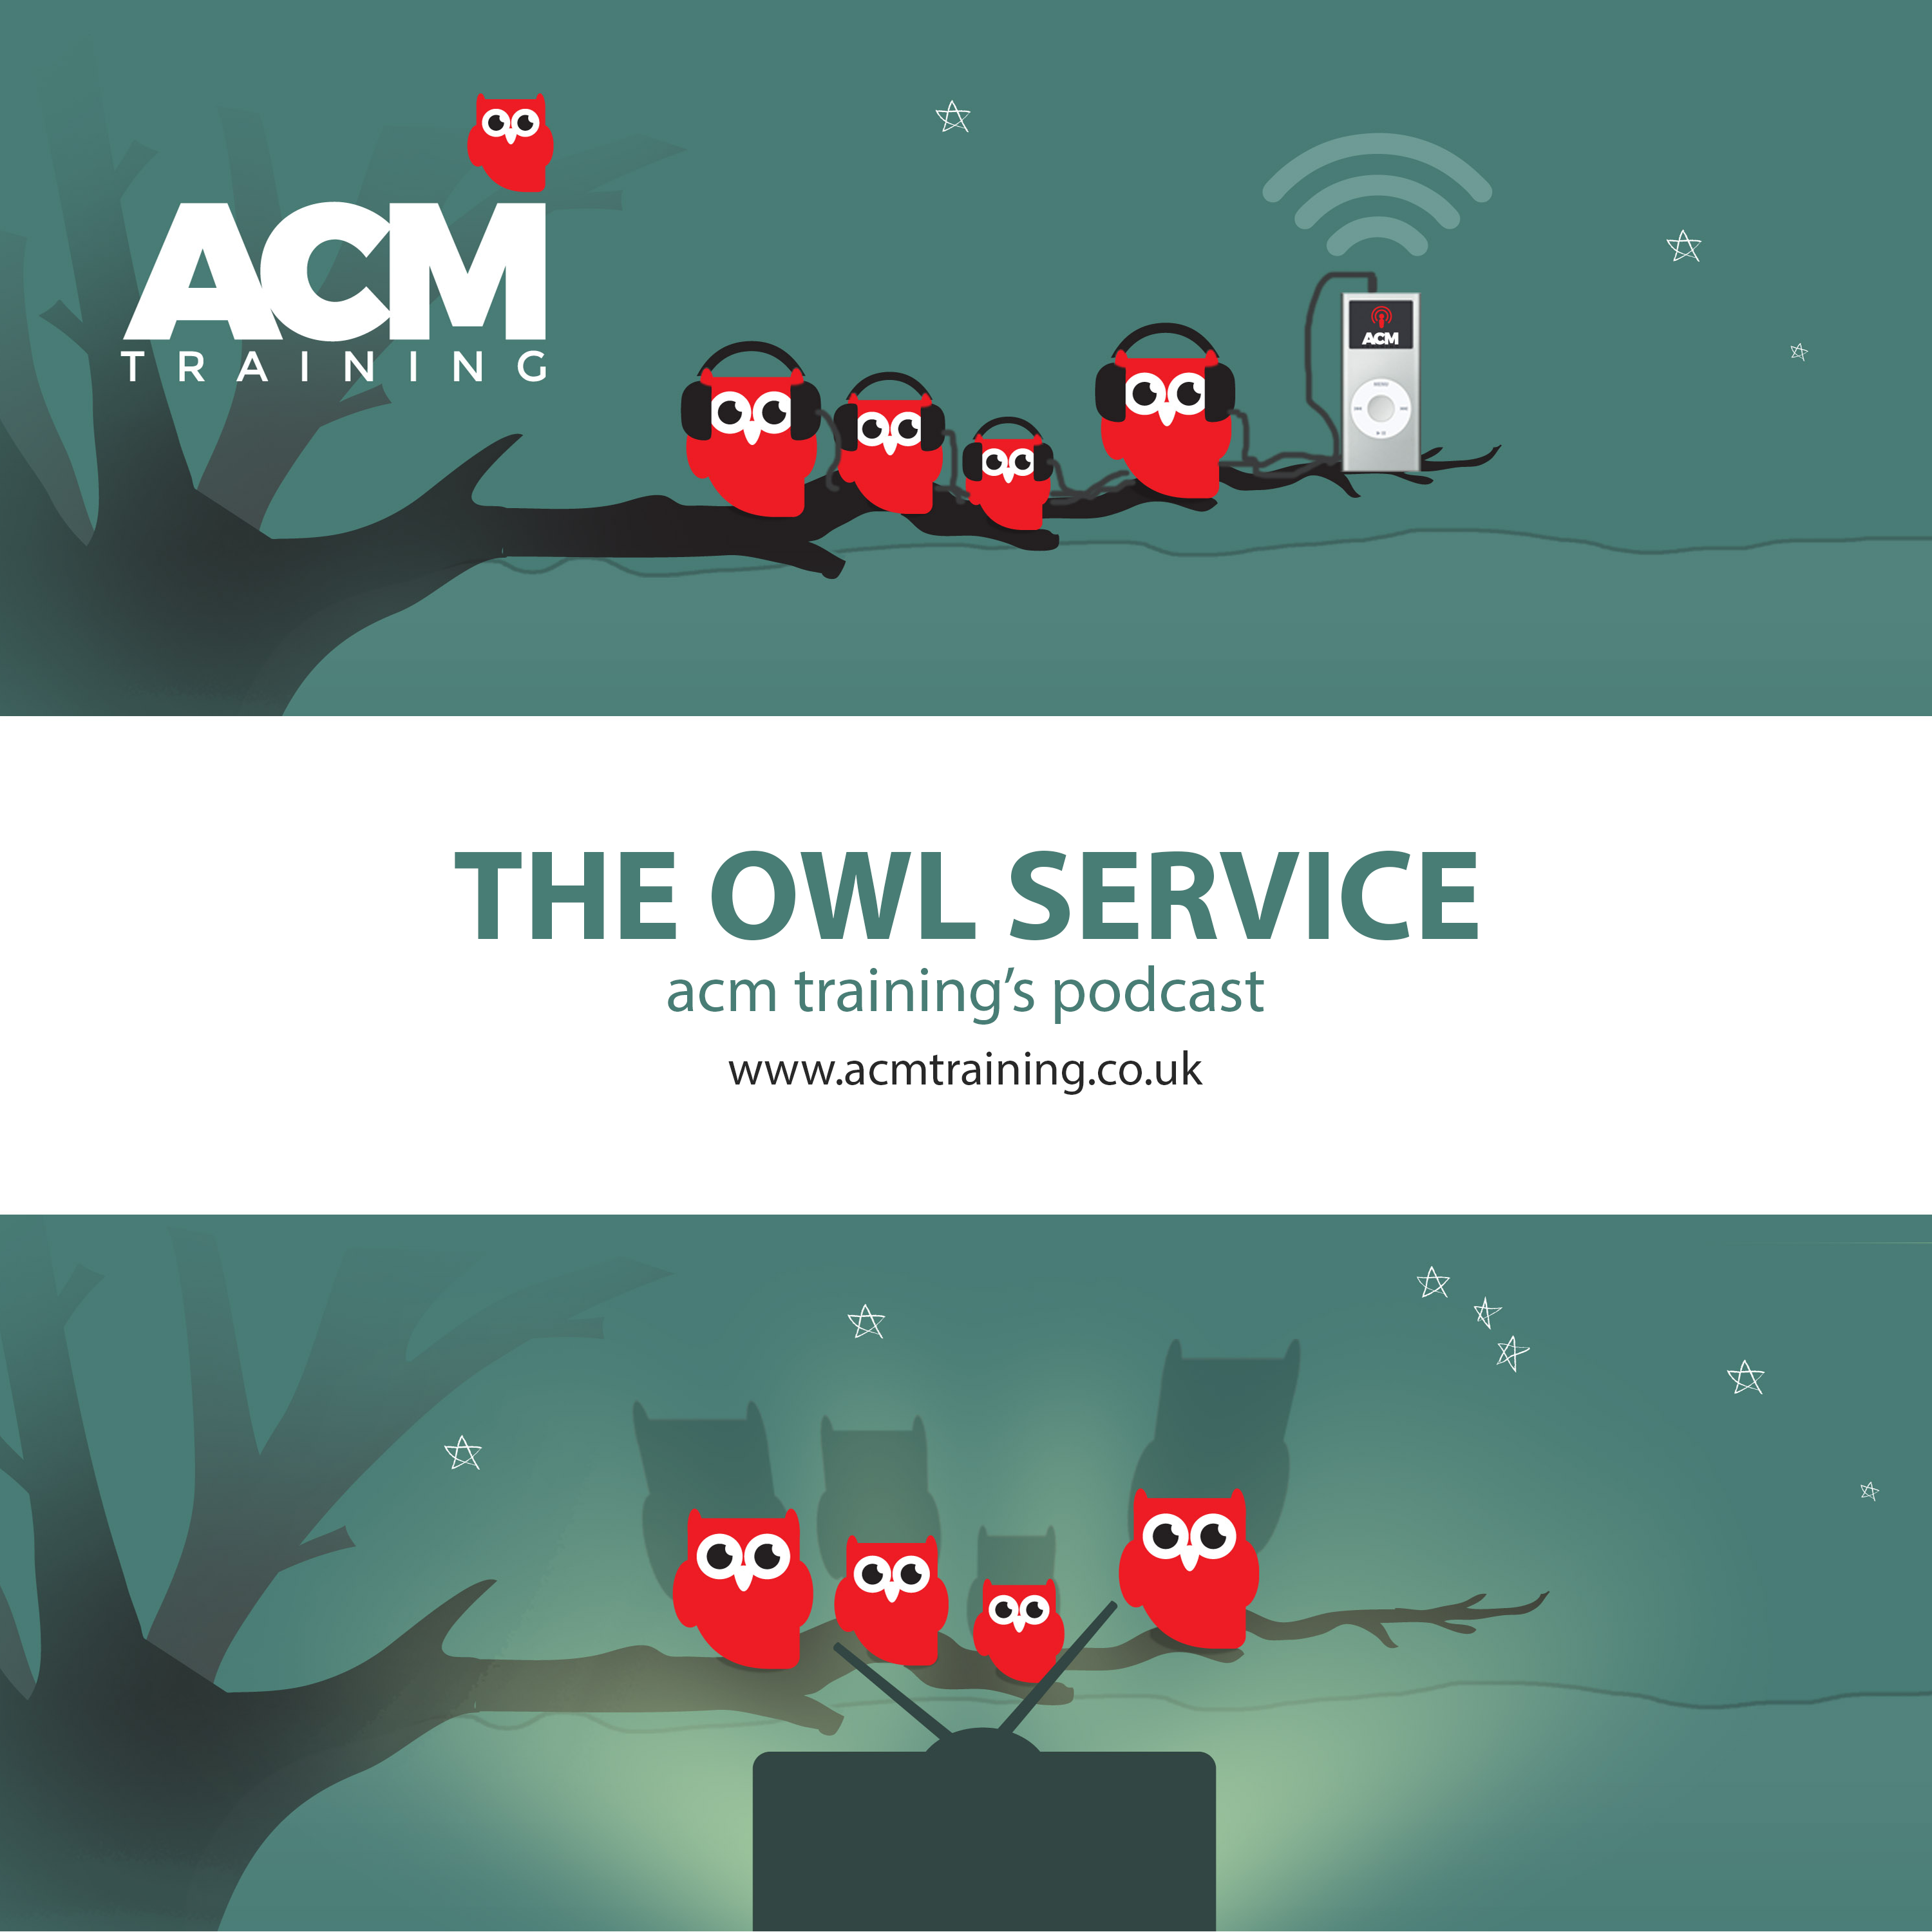 The Owl Service - ACM Training's podcast